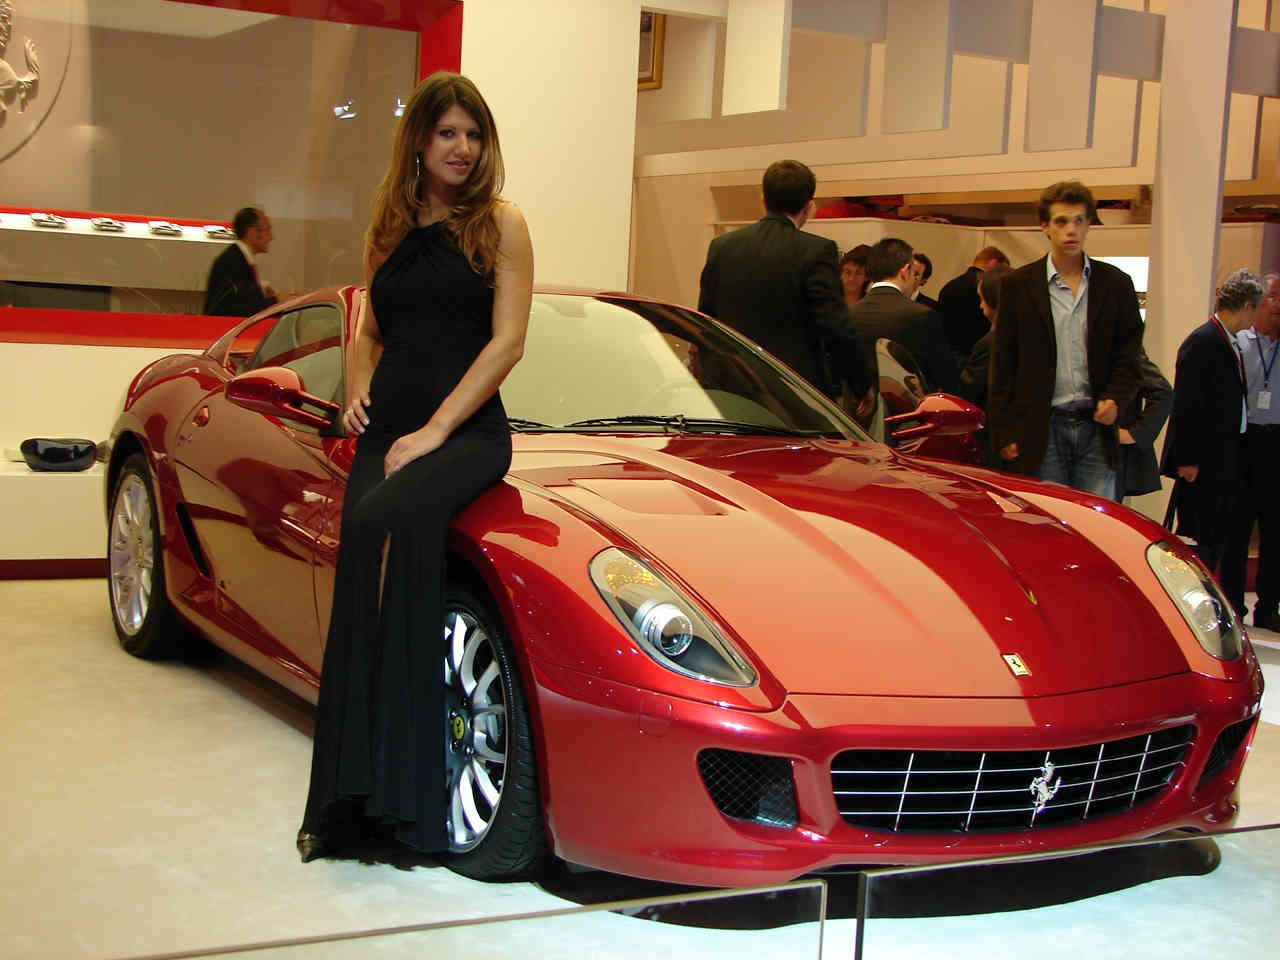 We are one of the best leading rent a car company in